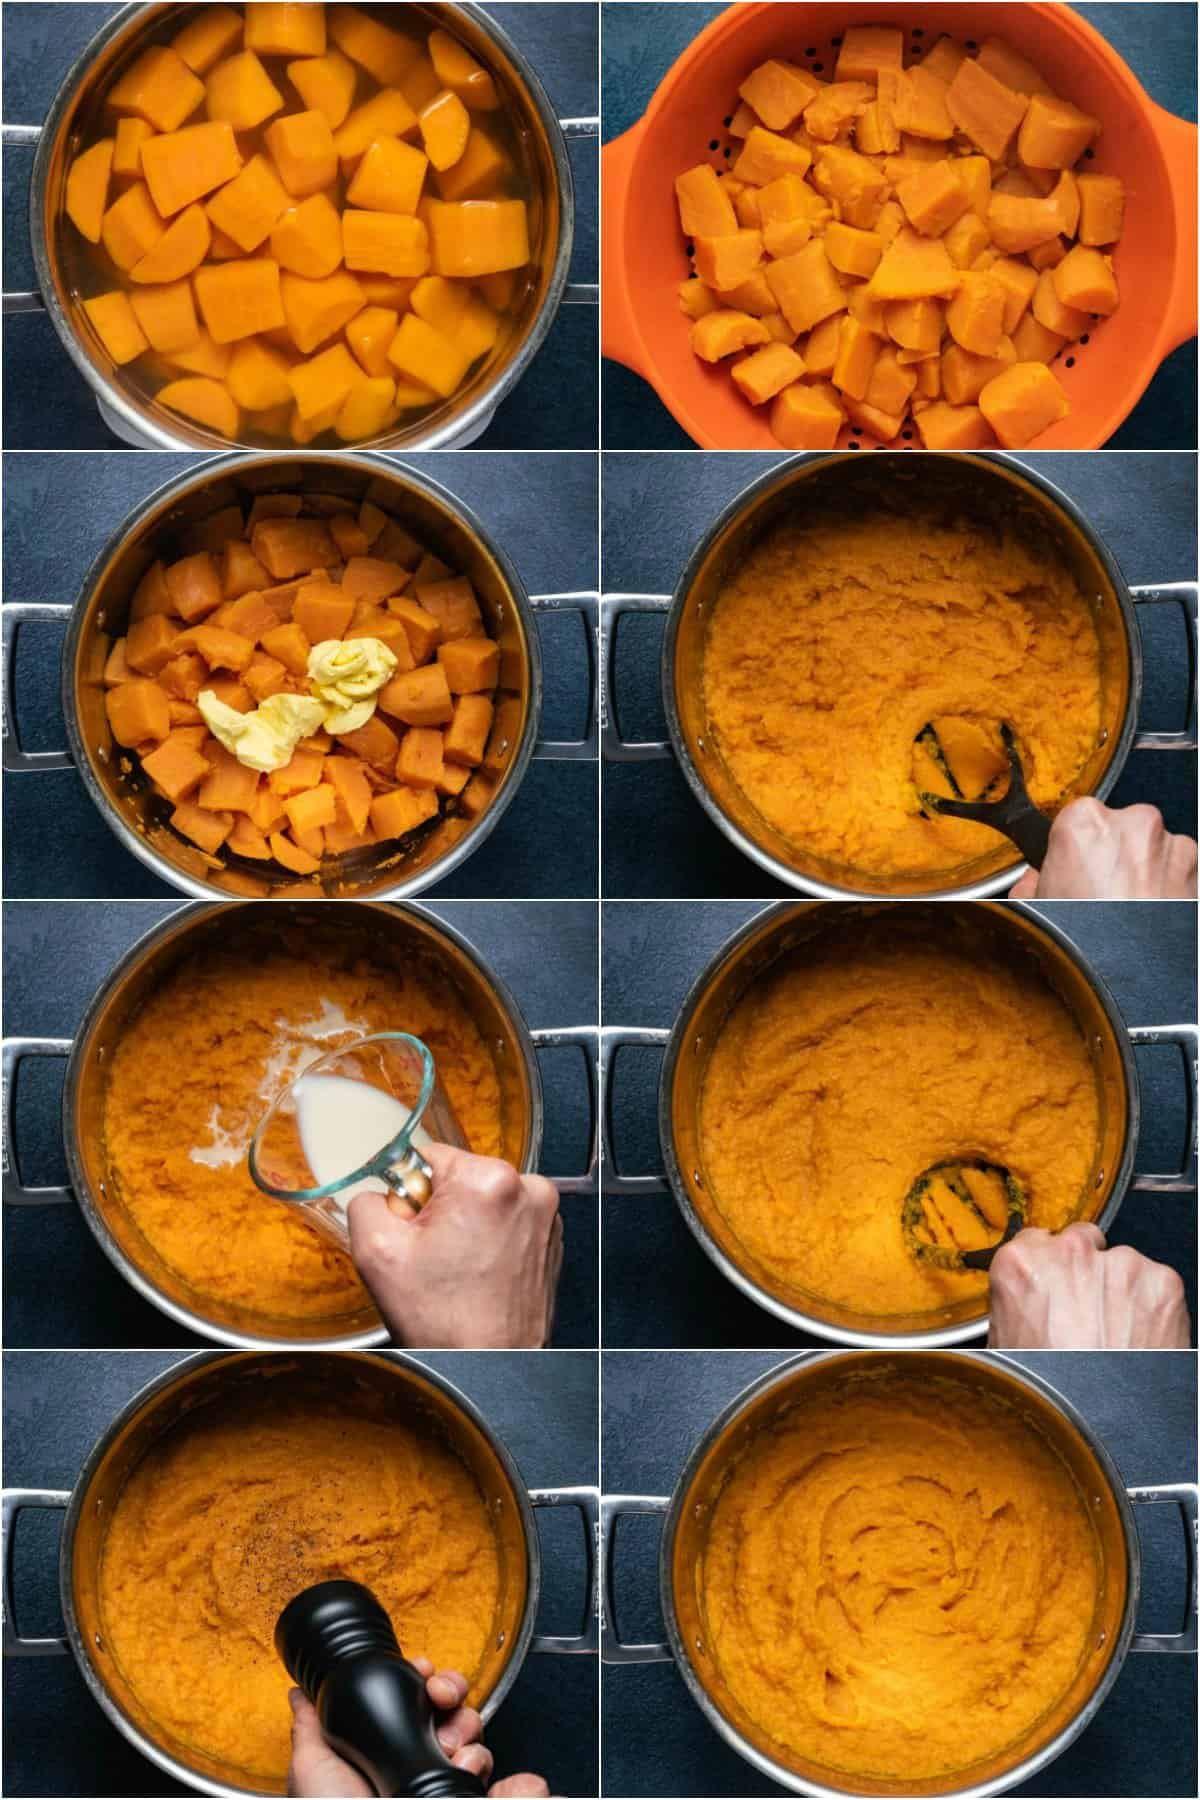 Step by step process photo collage of making vegan mashed sweet potatoes.